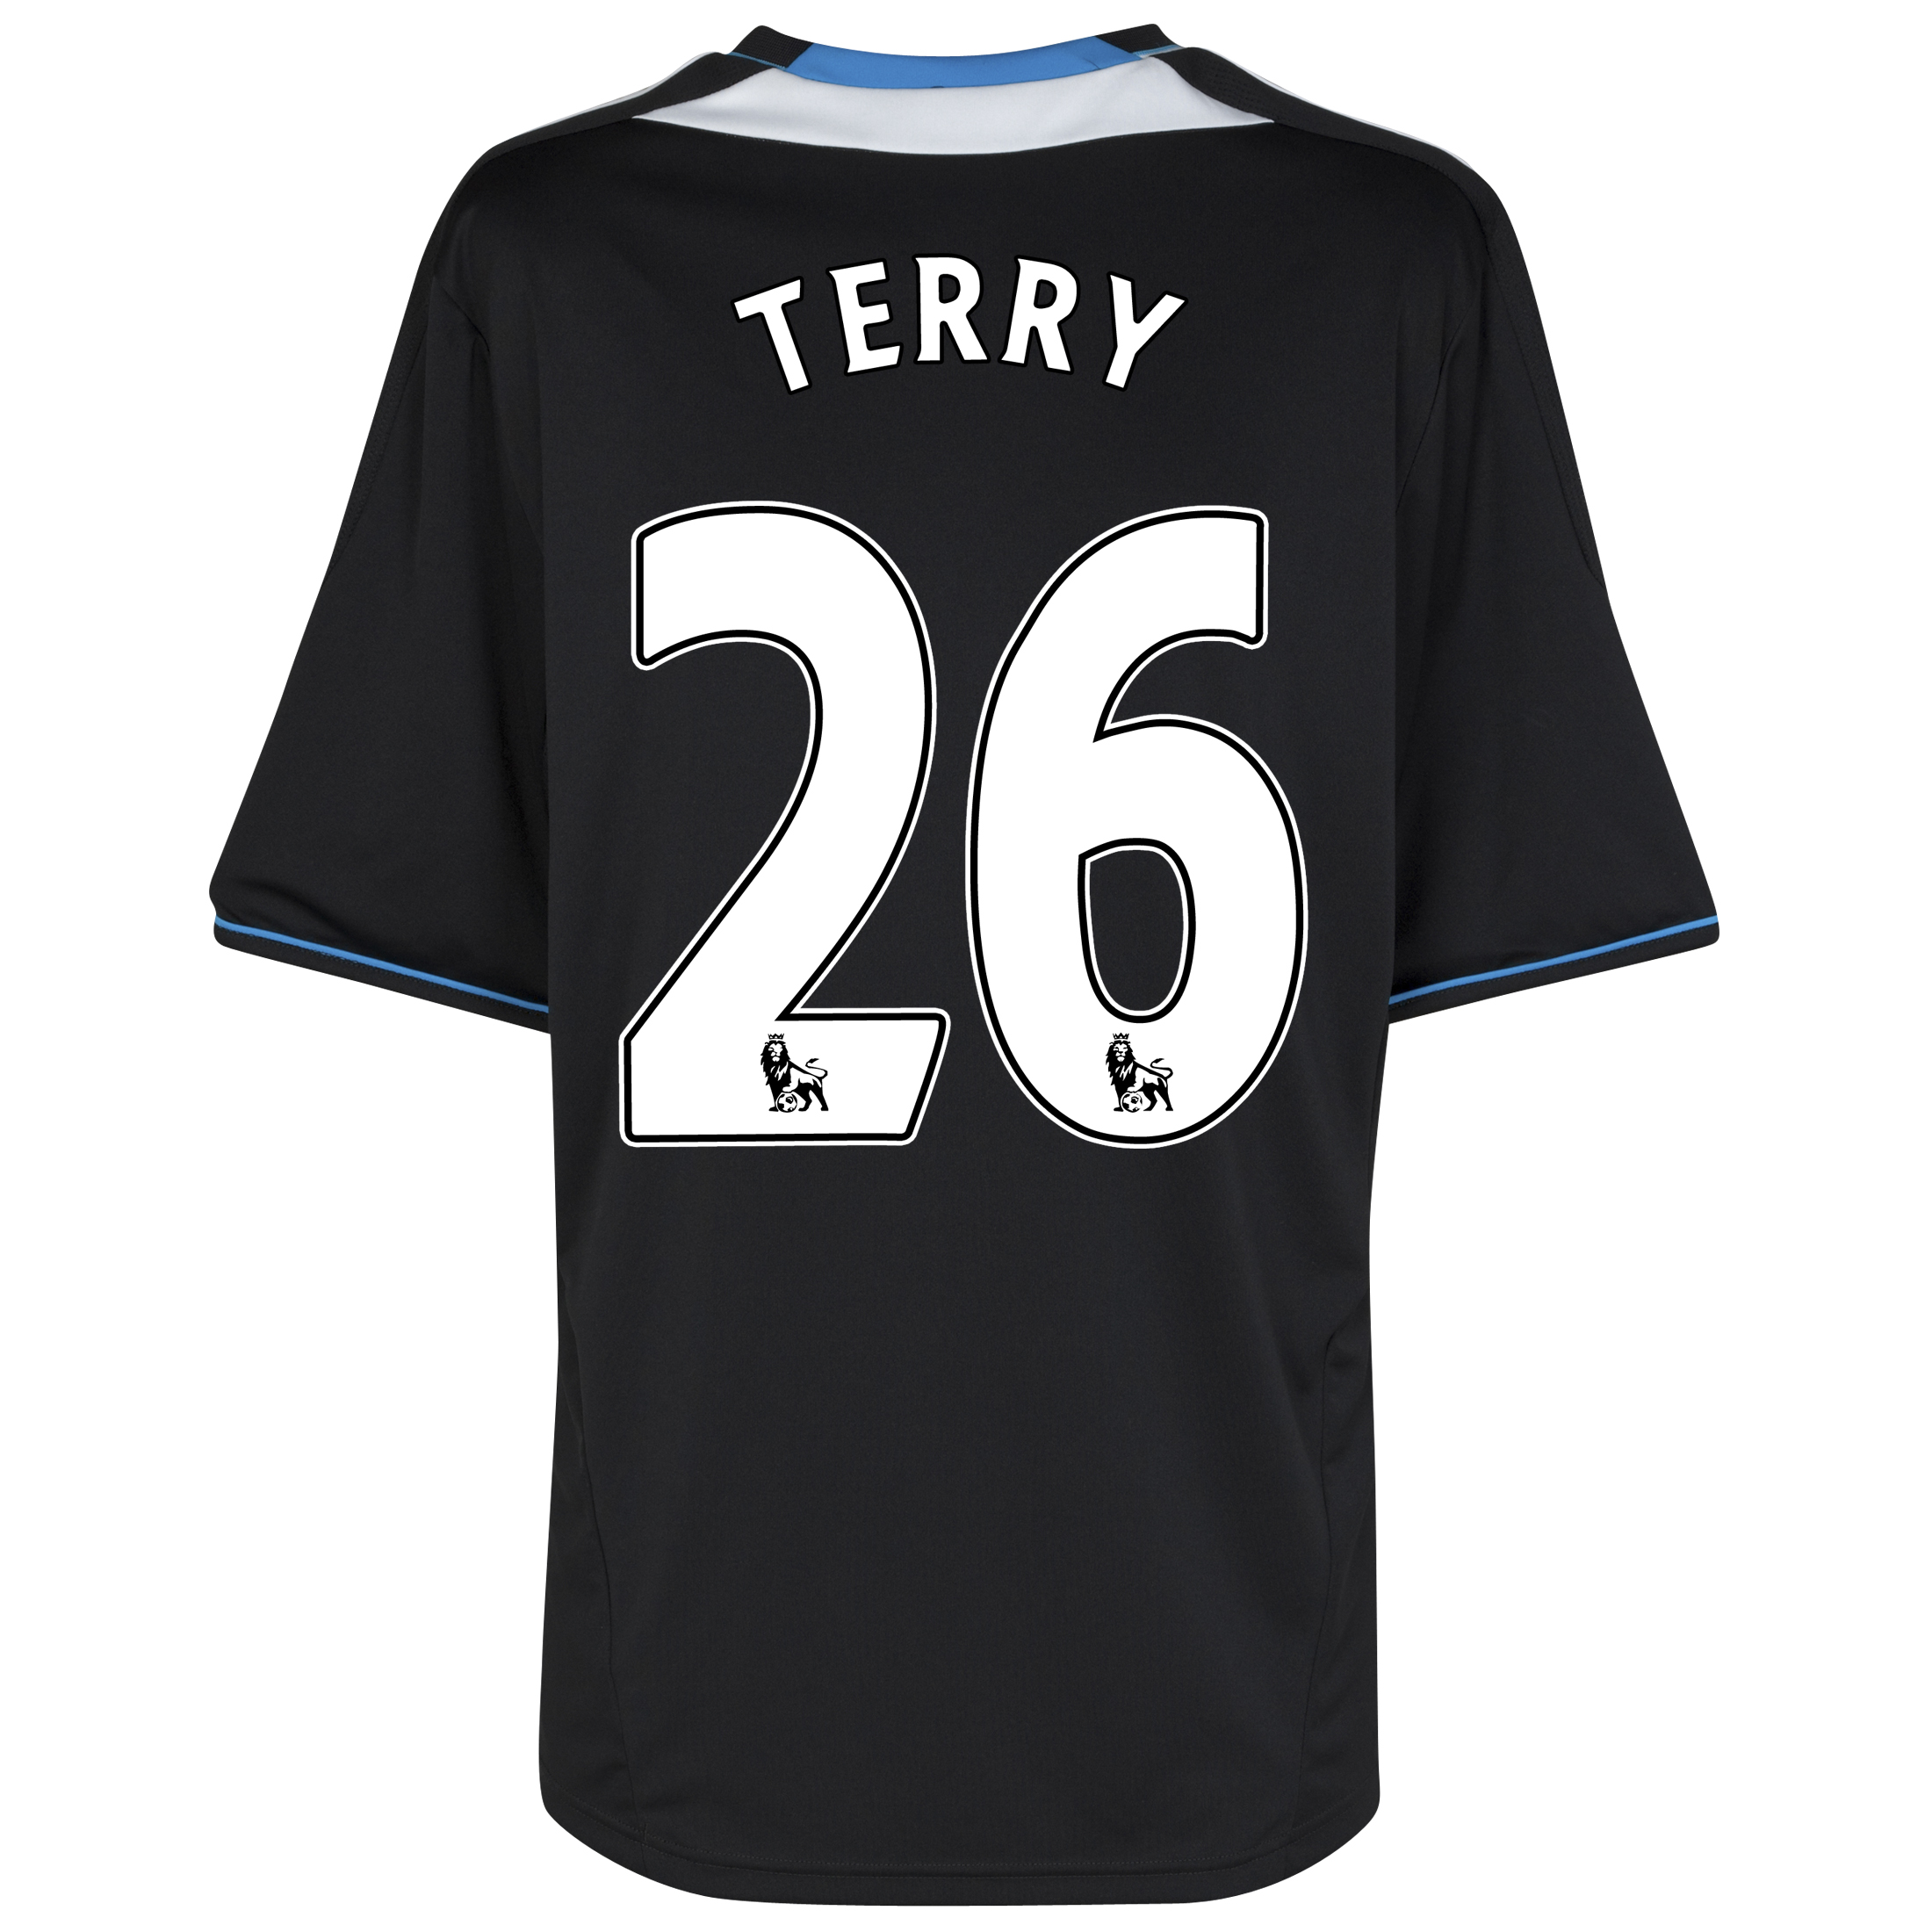 Chelsea Away Shirt 2011/12 with Terry 26 printing